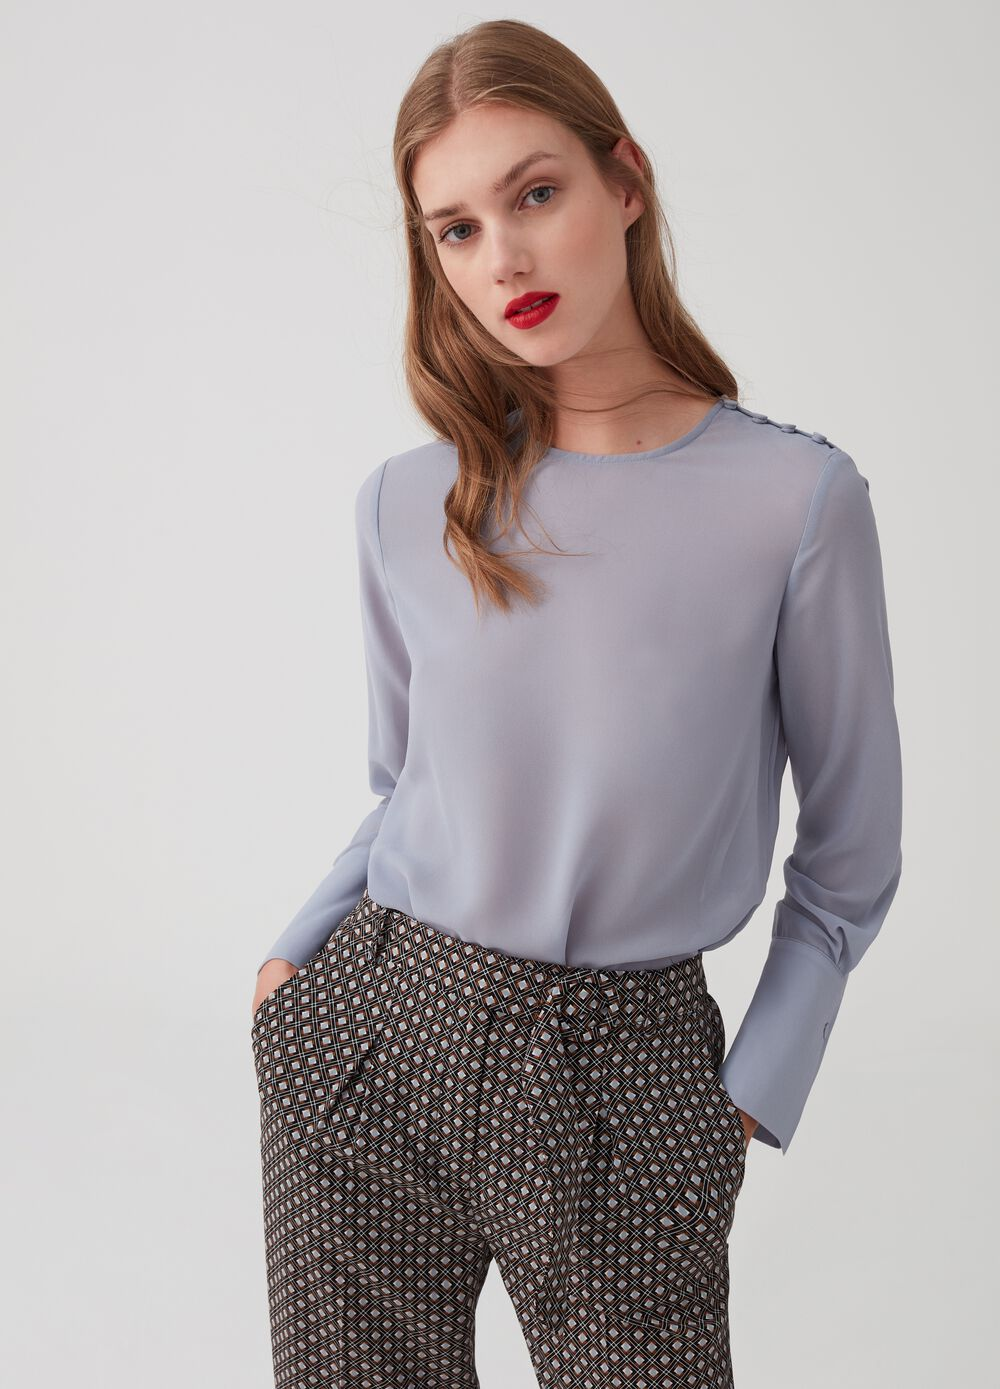 Blouse with wide sleeves and high cuffs with small buttons